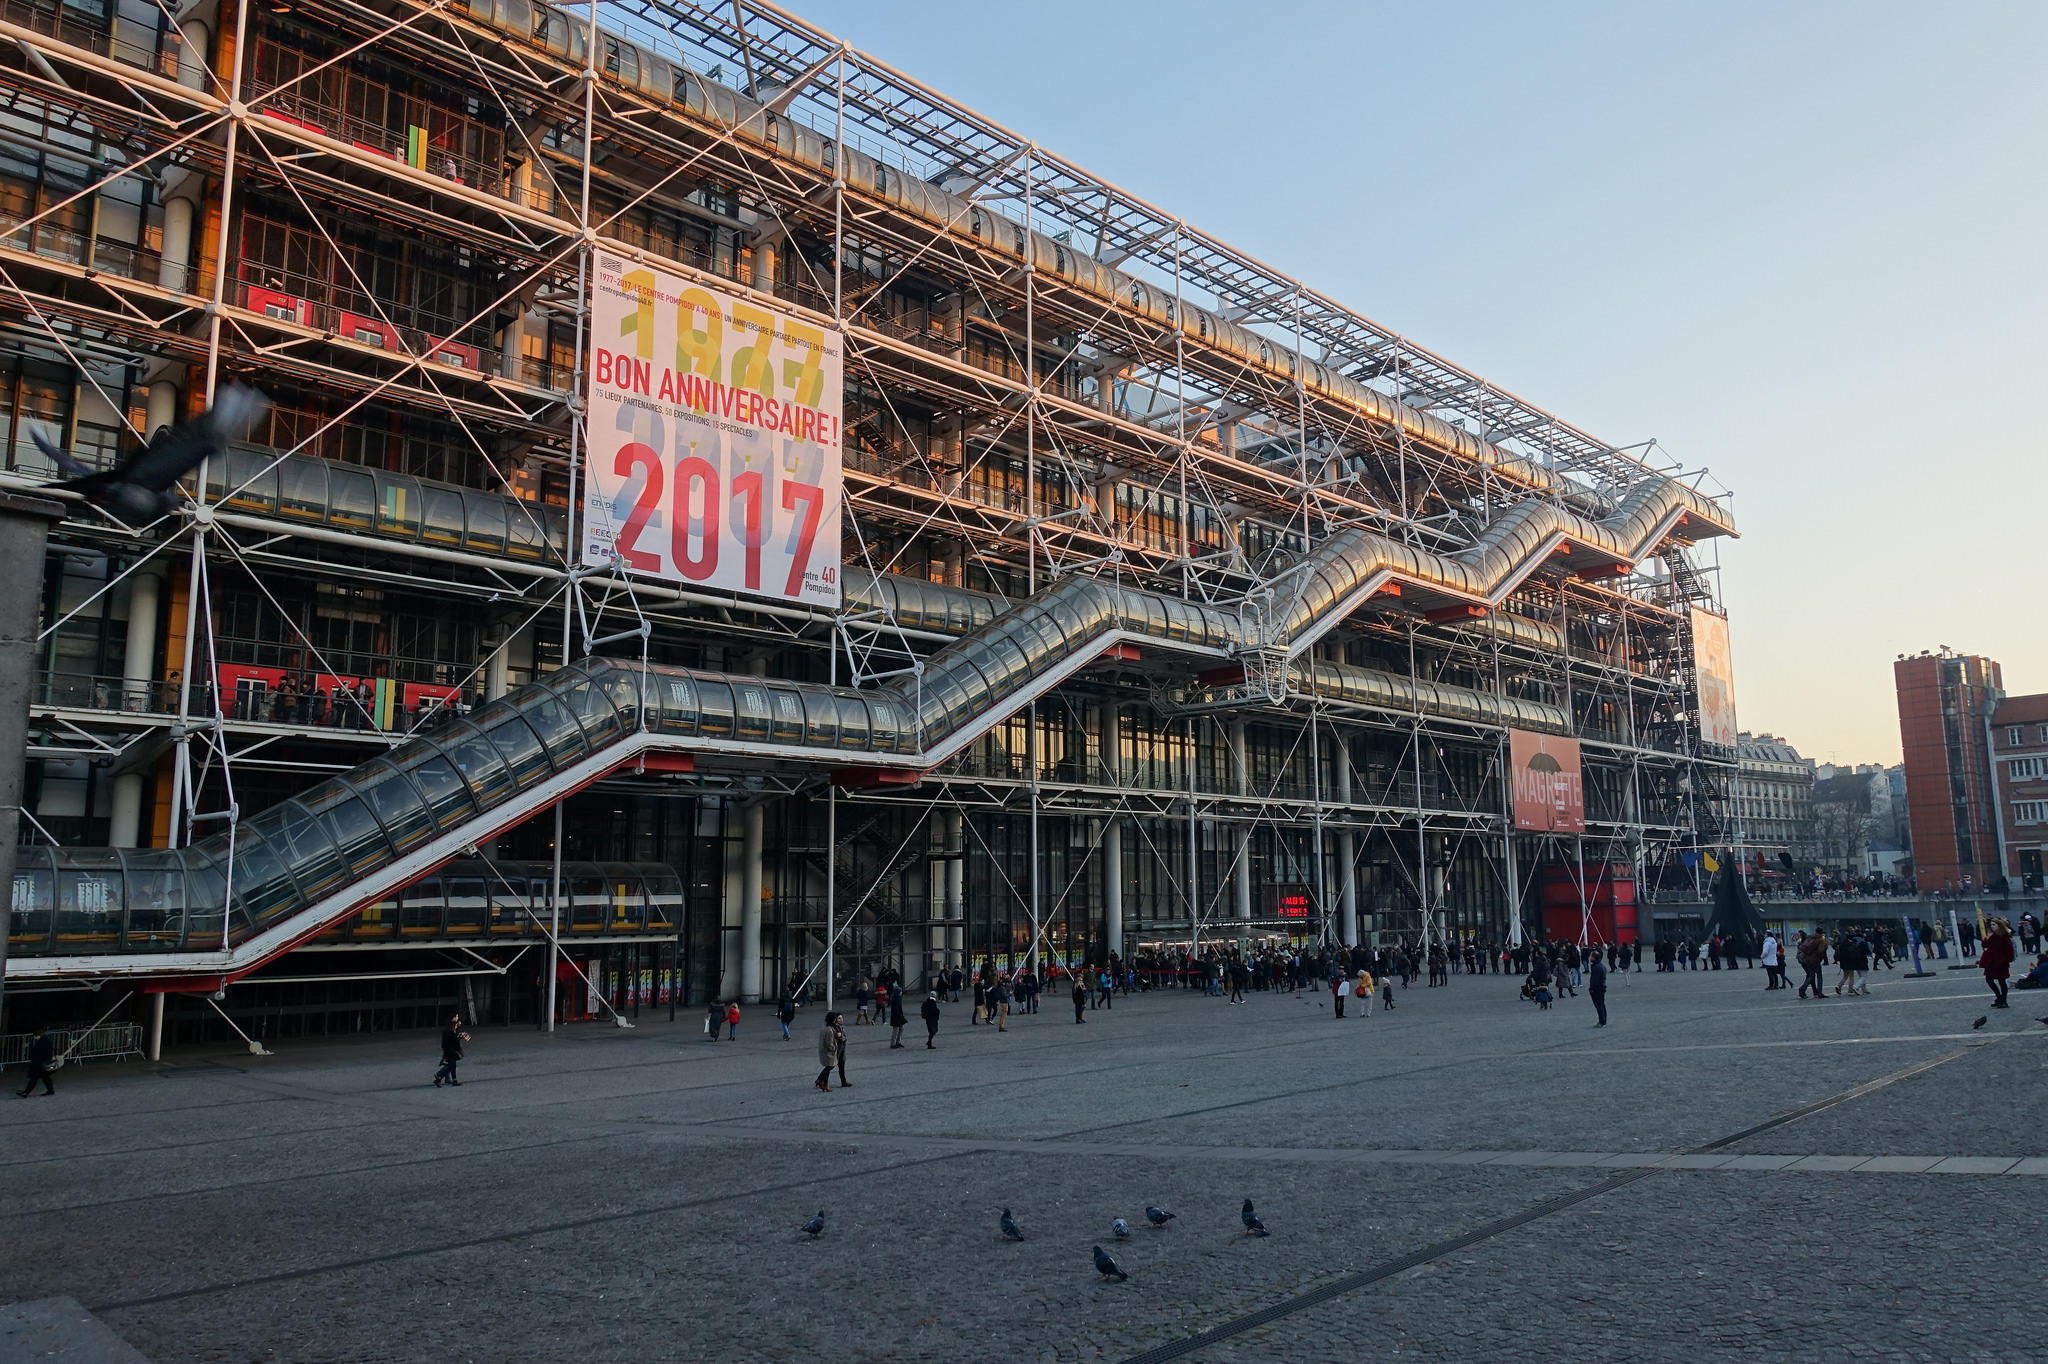 at paris pompidou center is still an unexpected trip kosu the pompidou center whose provocative design horrified critics 40 years ago in paris is now a beloved destination for french and foreign ors